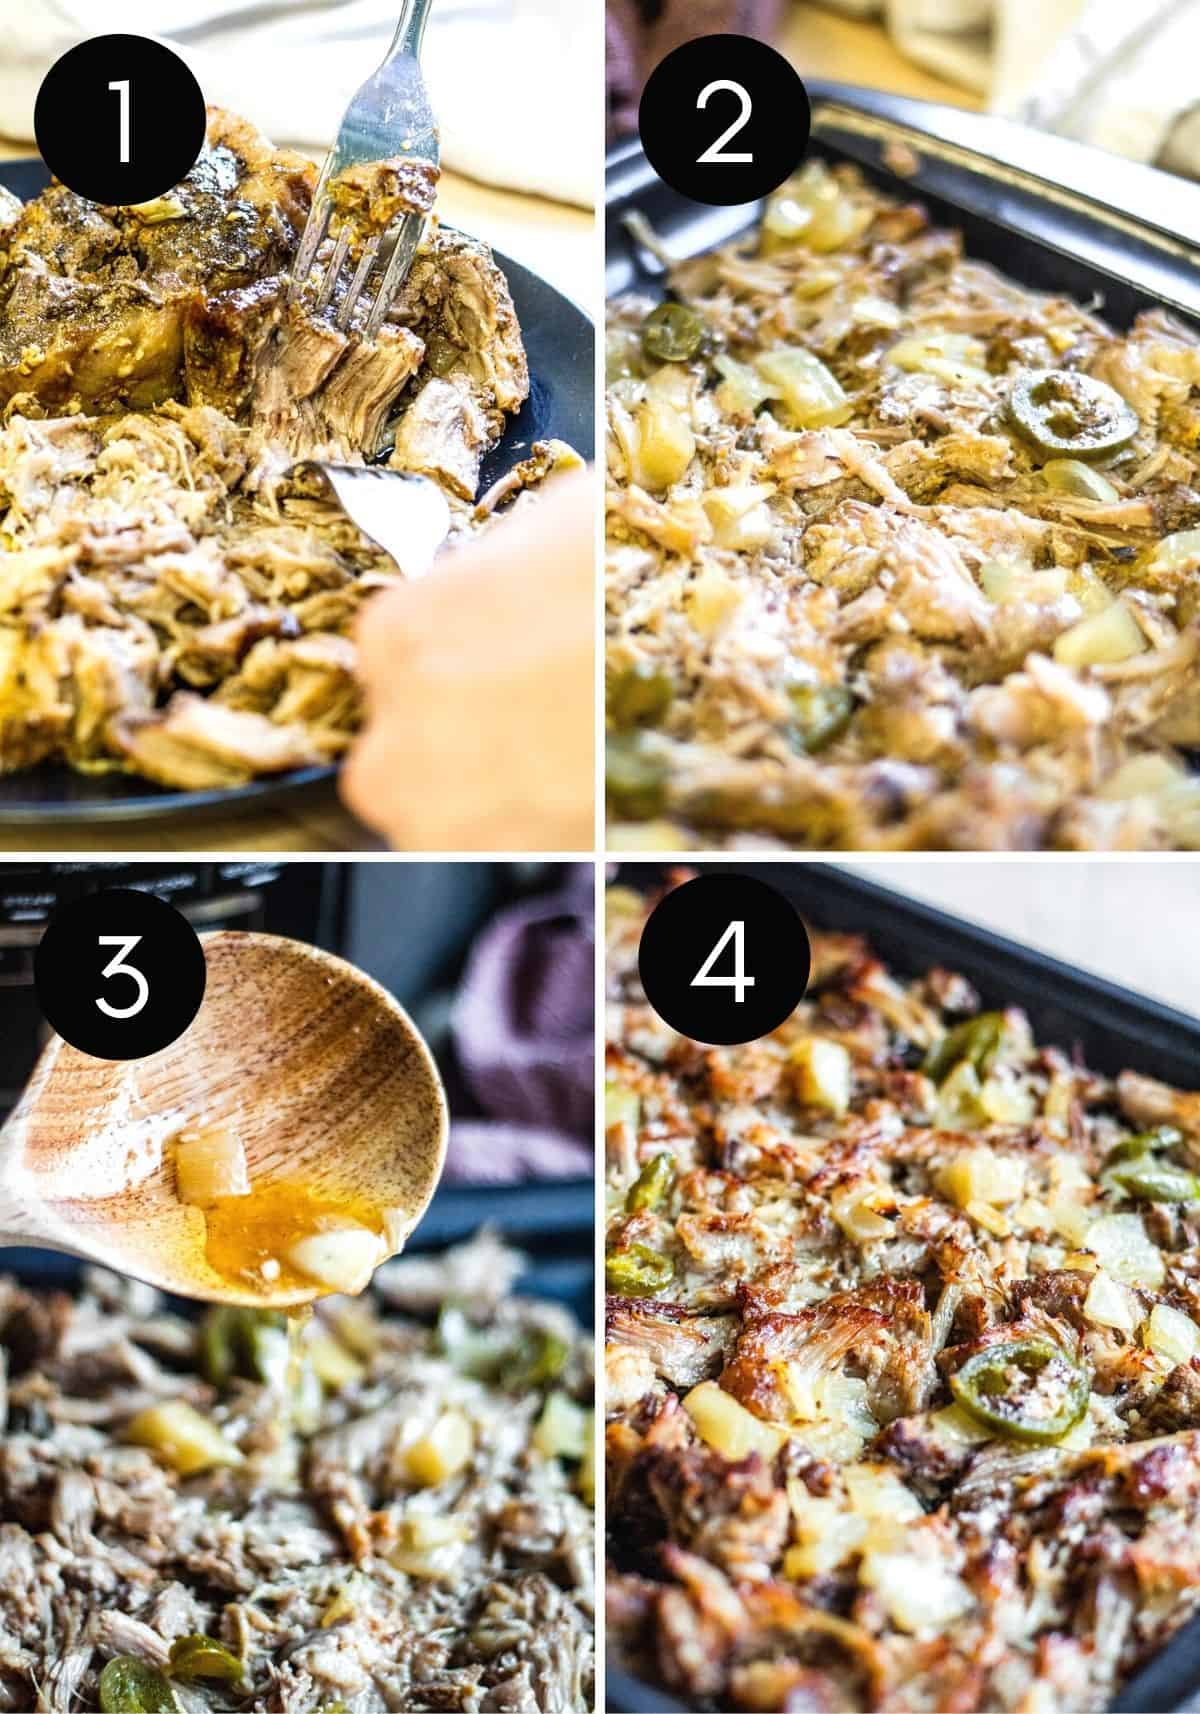 Four prep image collage showing pork be shredded and broiled.